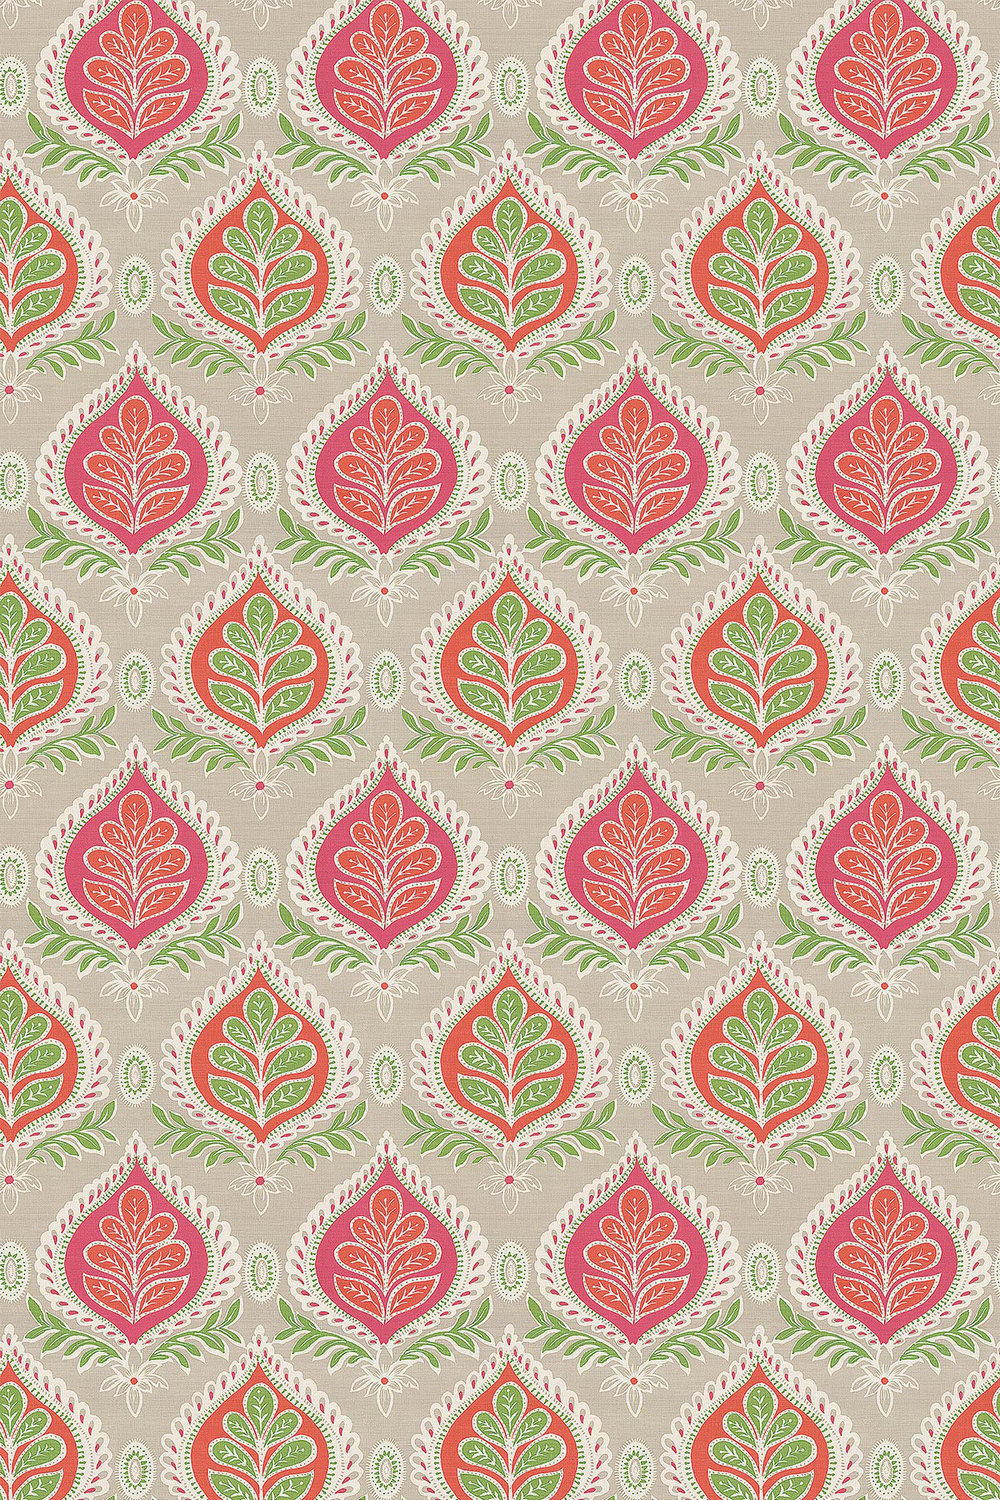 Midland Fabric - Pink and Coral - by Thibaut